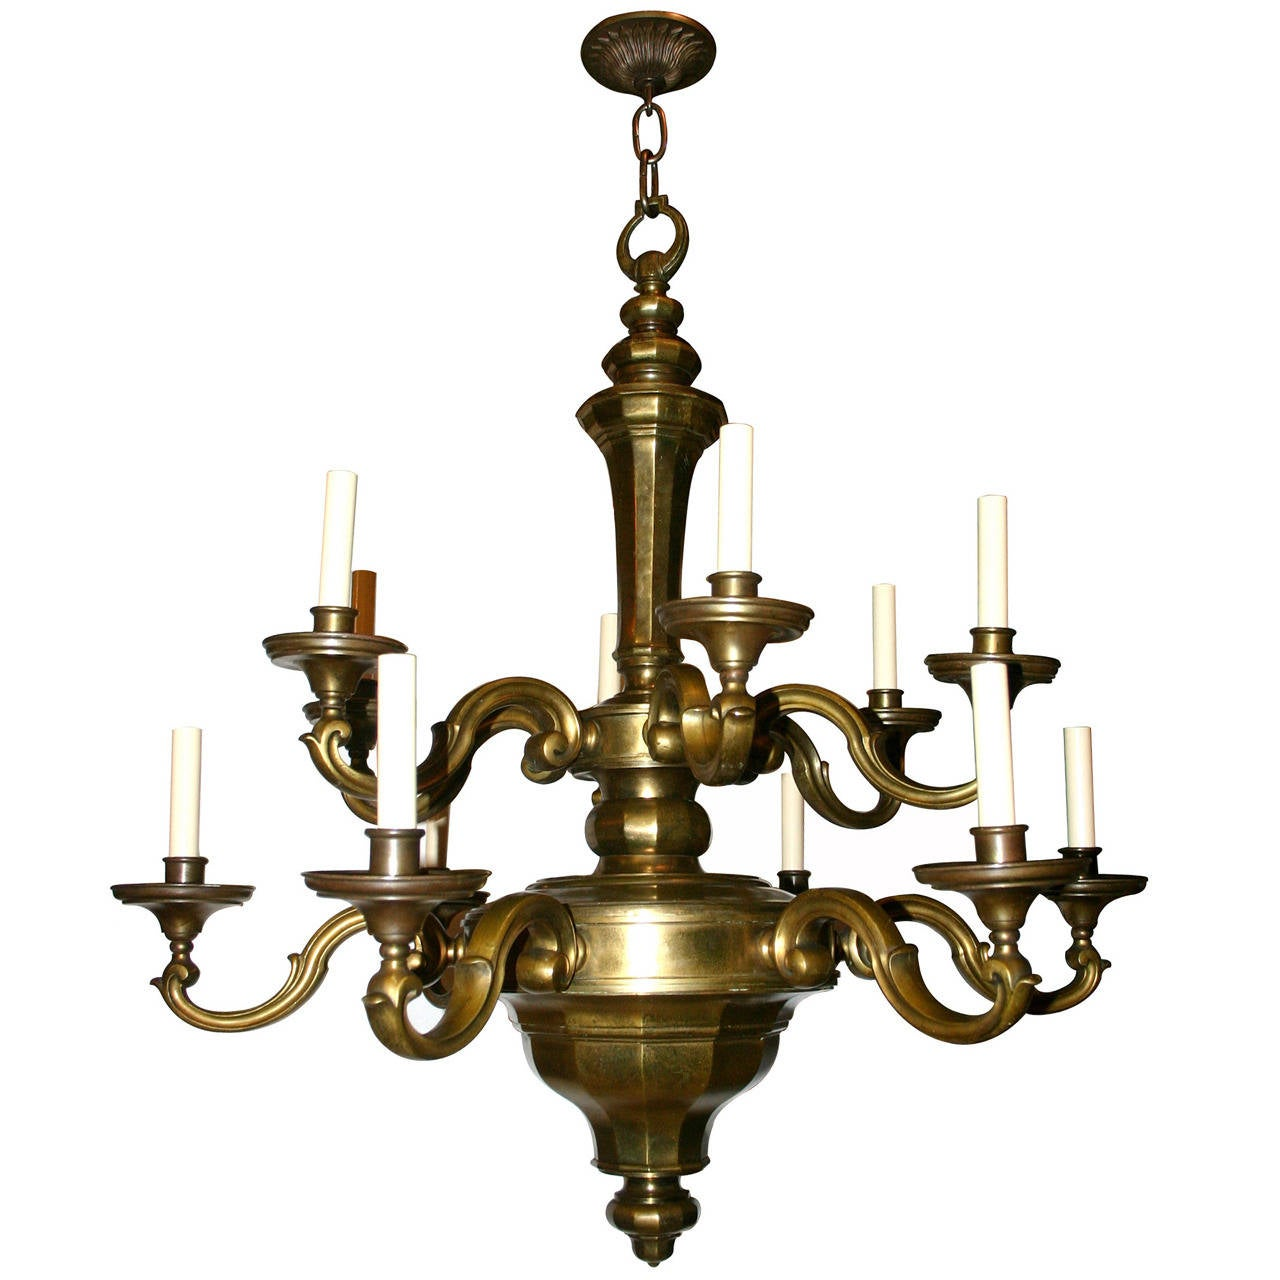 Dutch Double Tiered Chandelier For Sale at 1stdibs